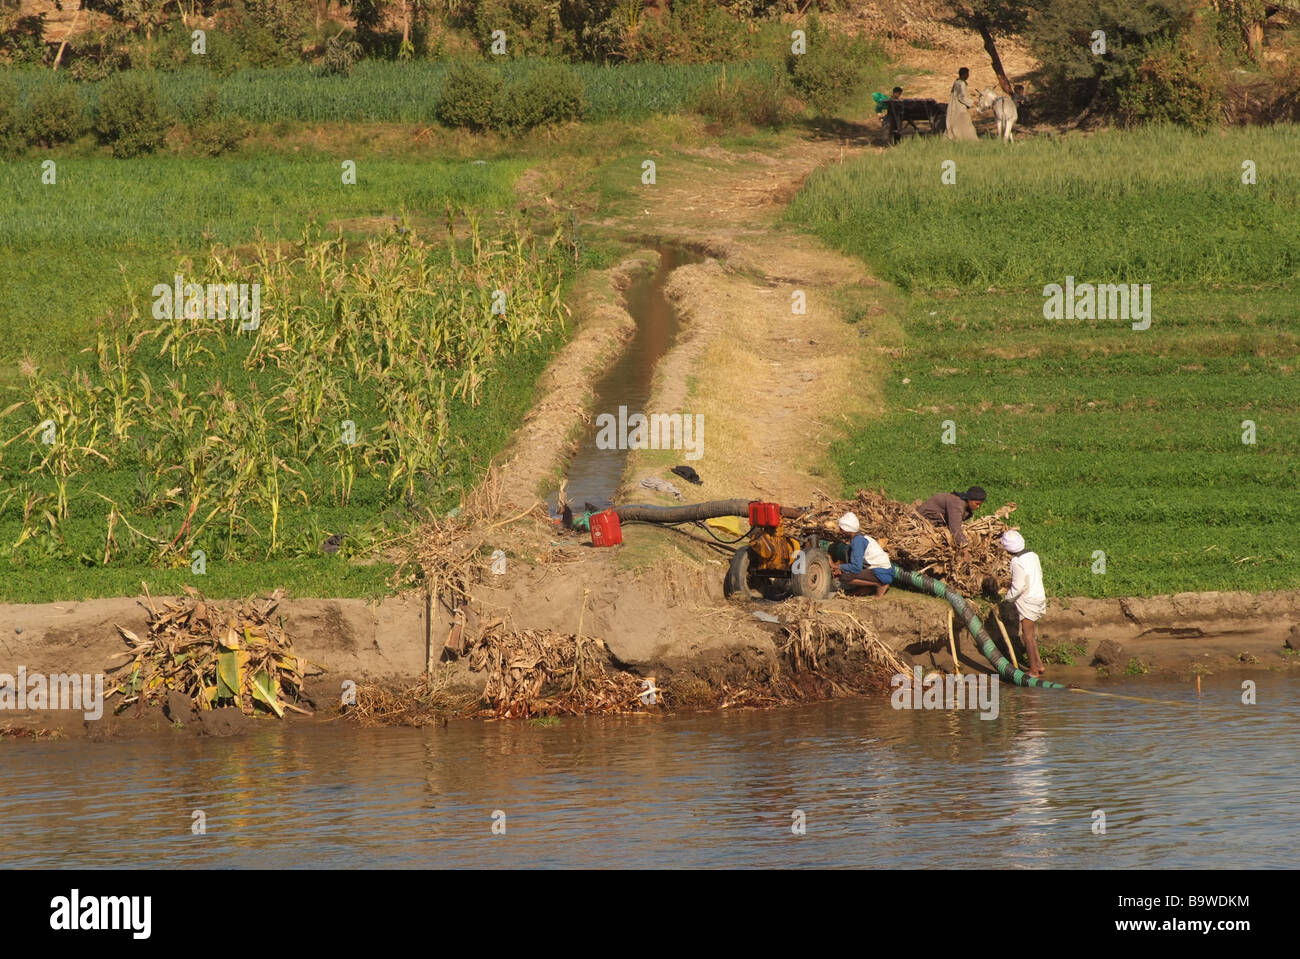 egypt-nile-river-an-irrigation-system-pu